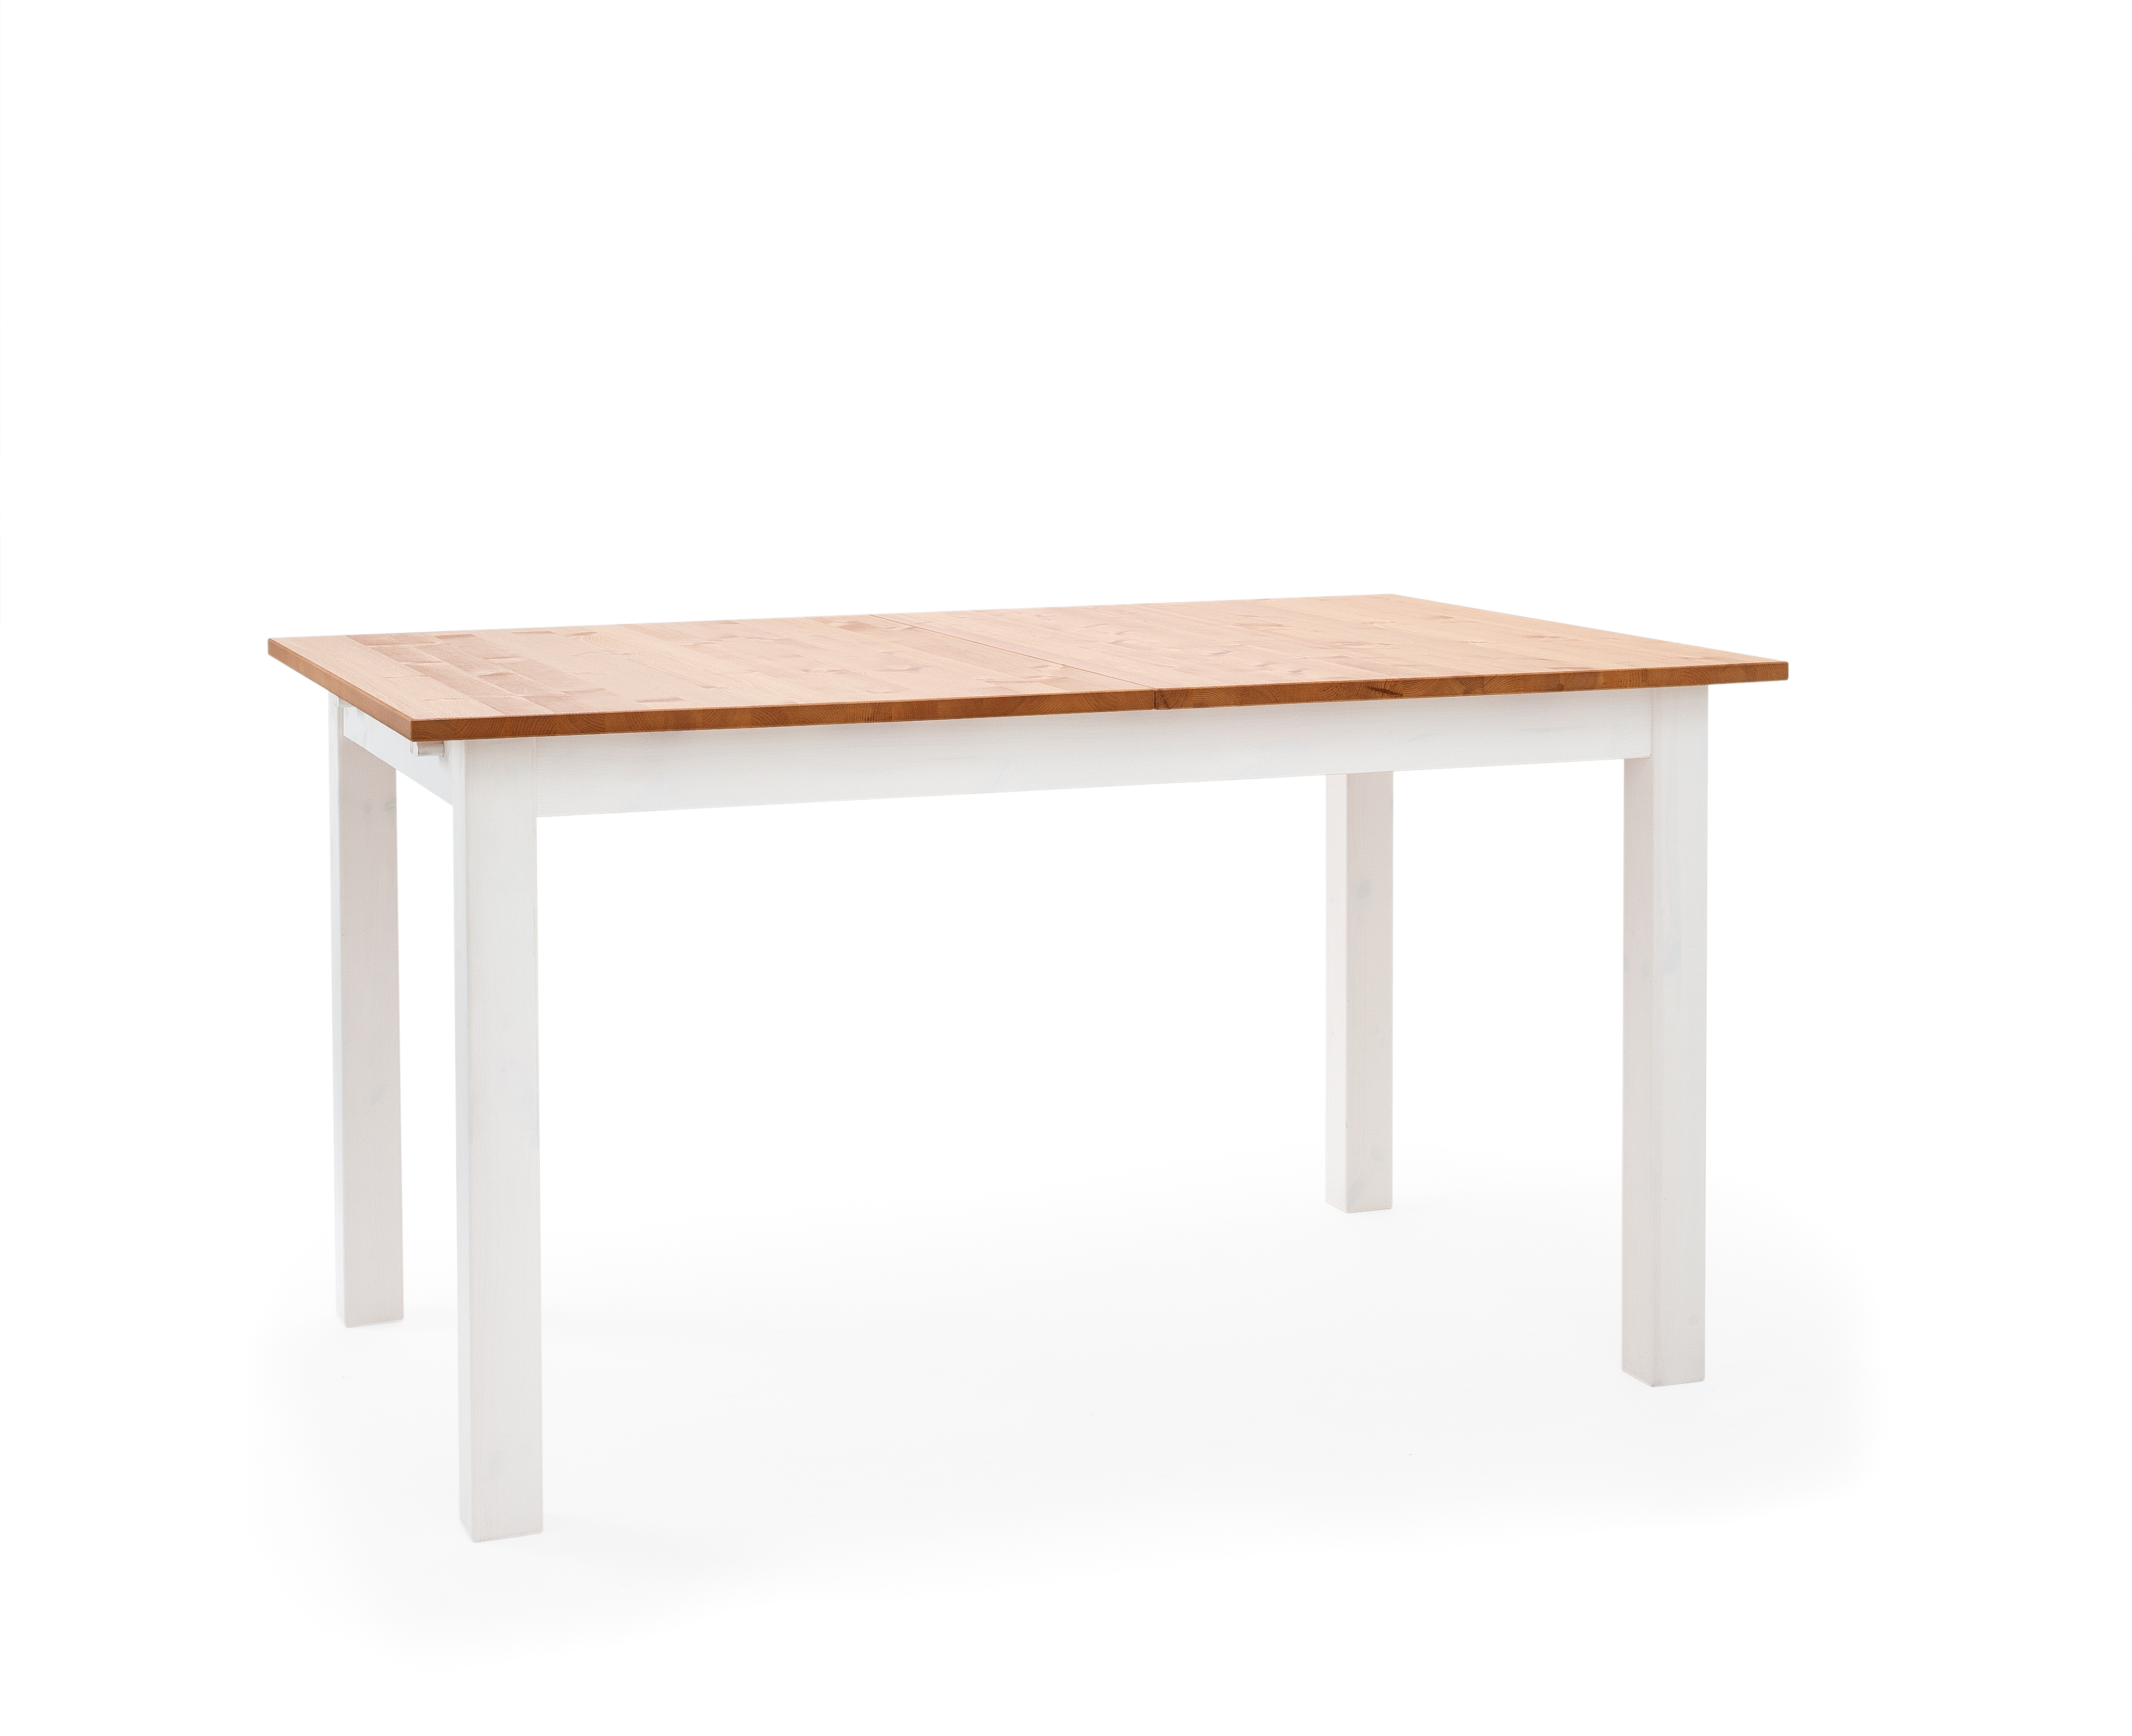 Extendable table – Lietwood